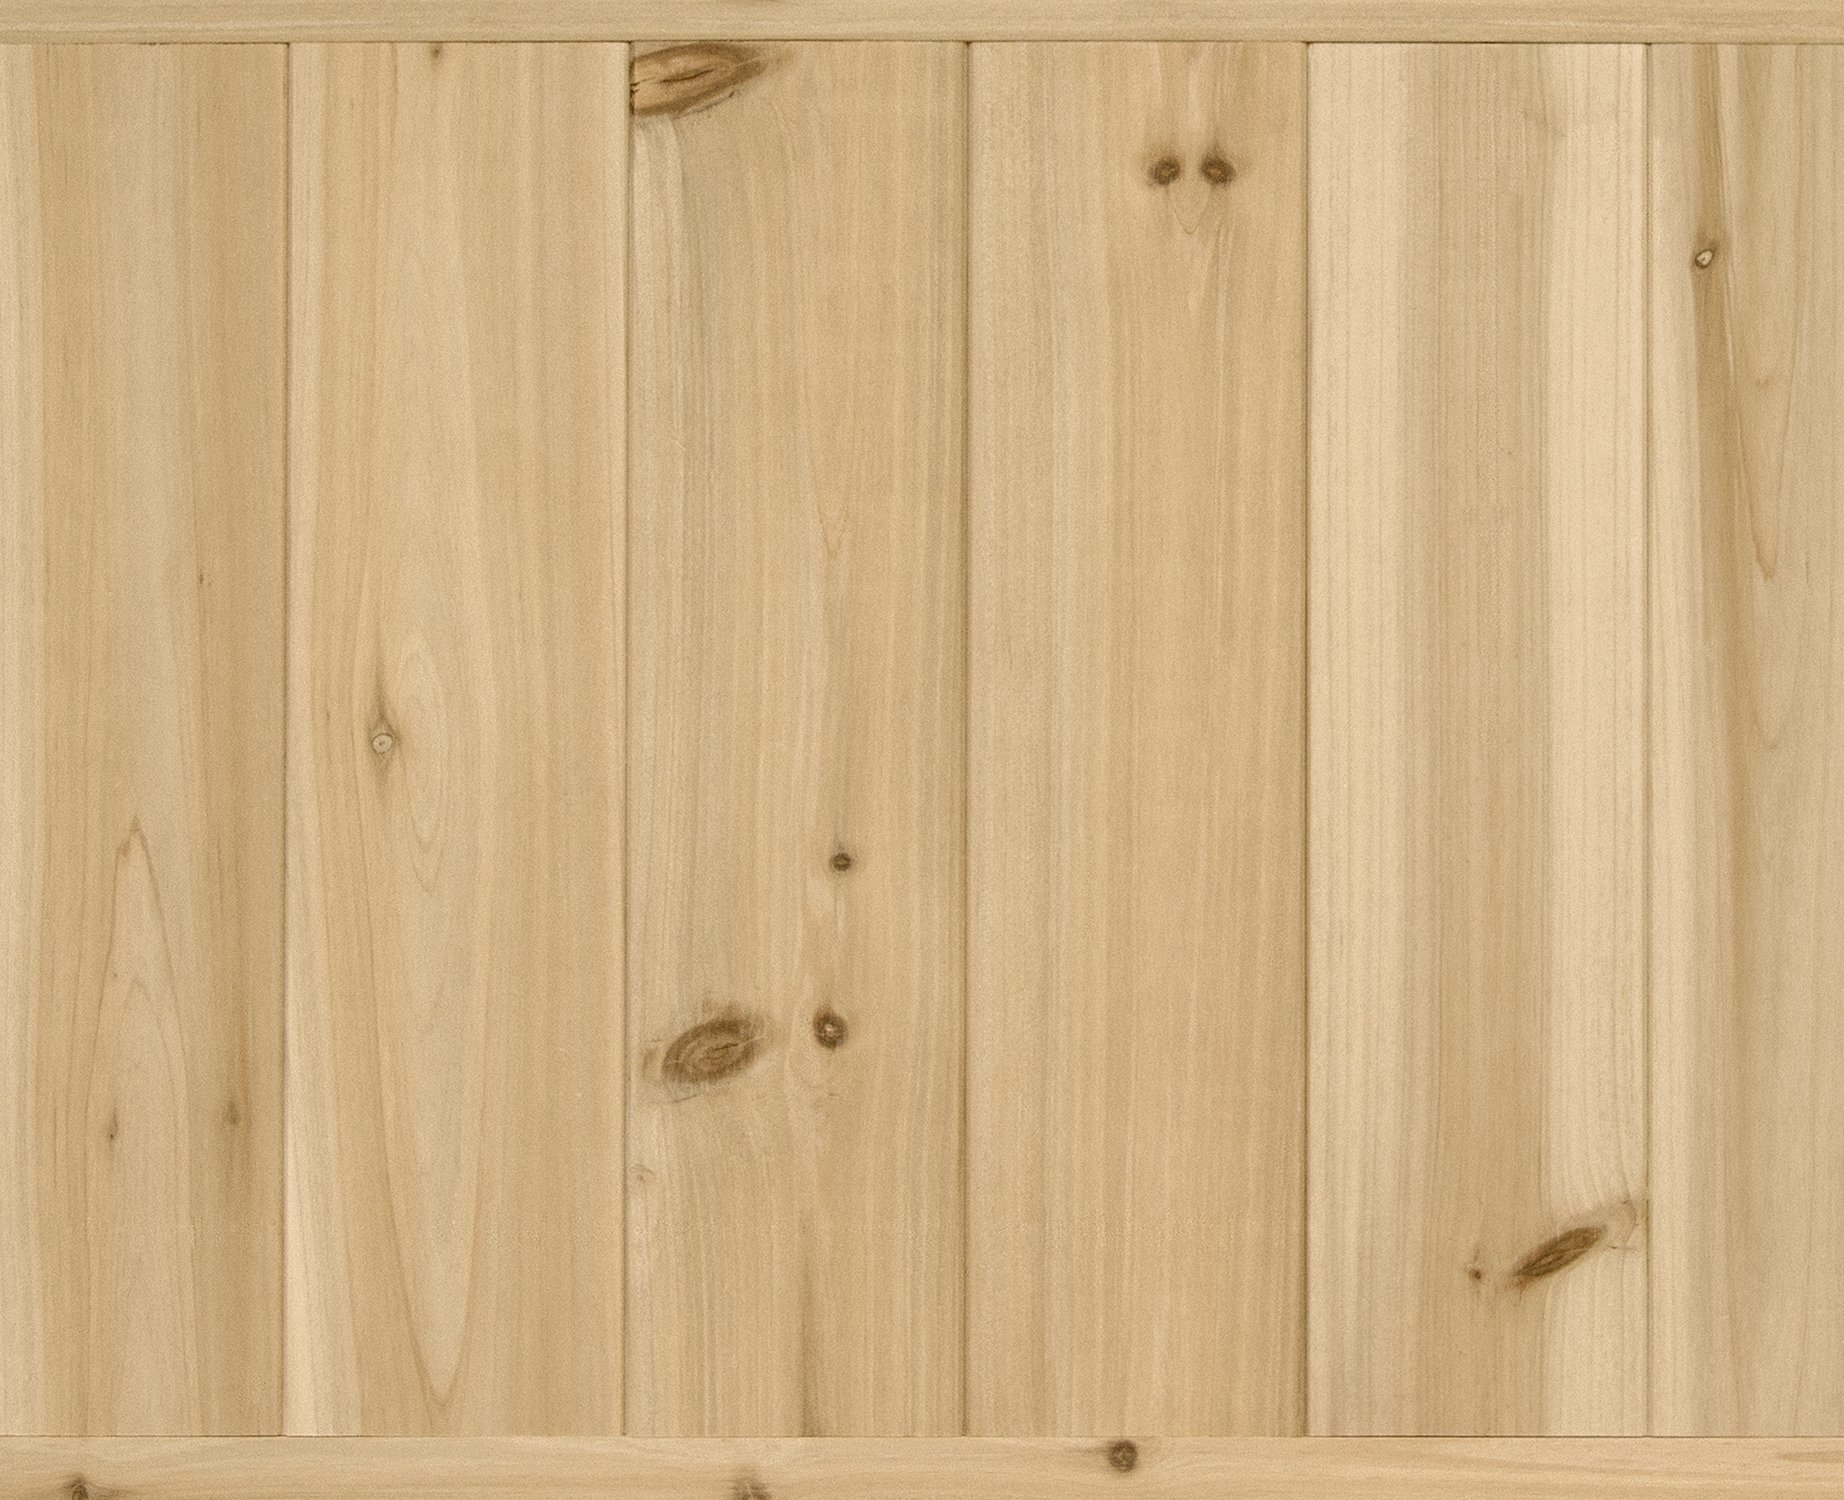 Suncast WRDB12000 Wood and Resin Deck Box by Suncast (Image #4)